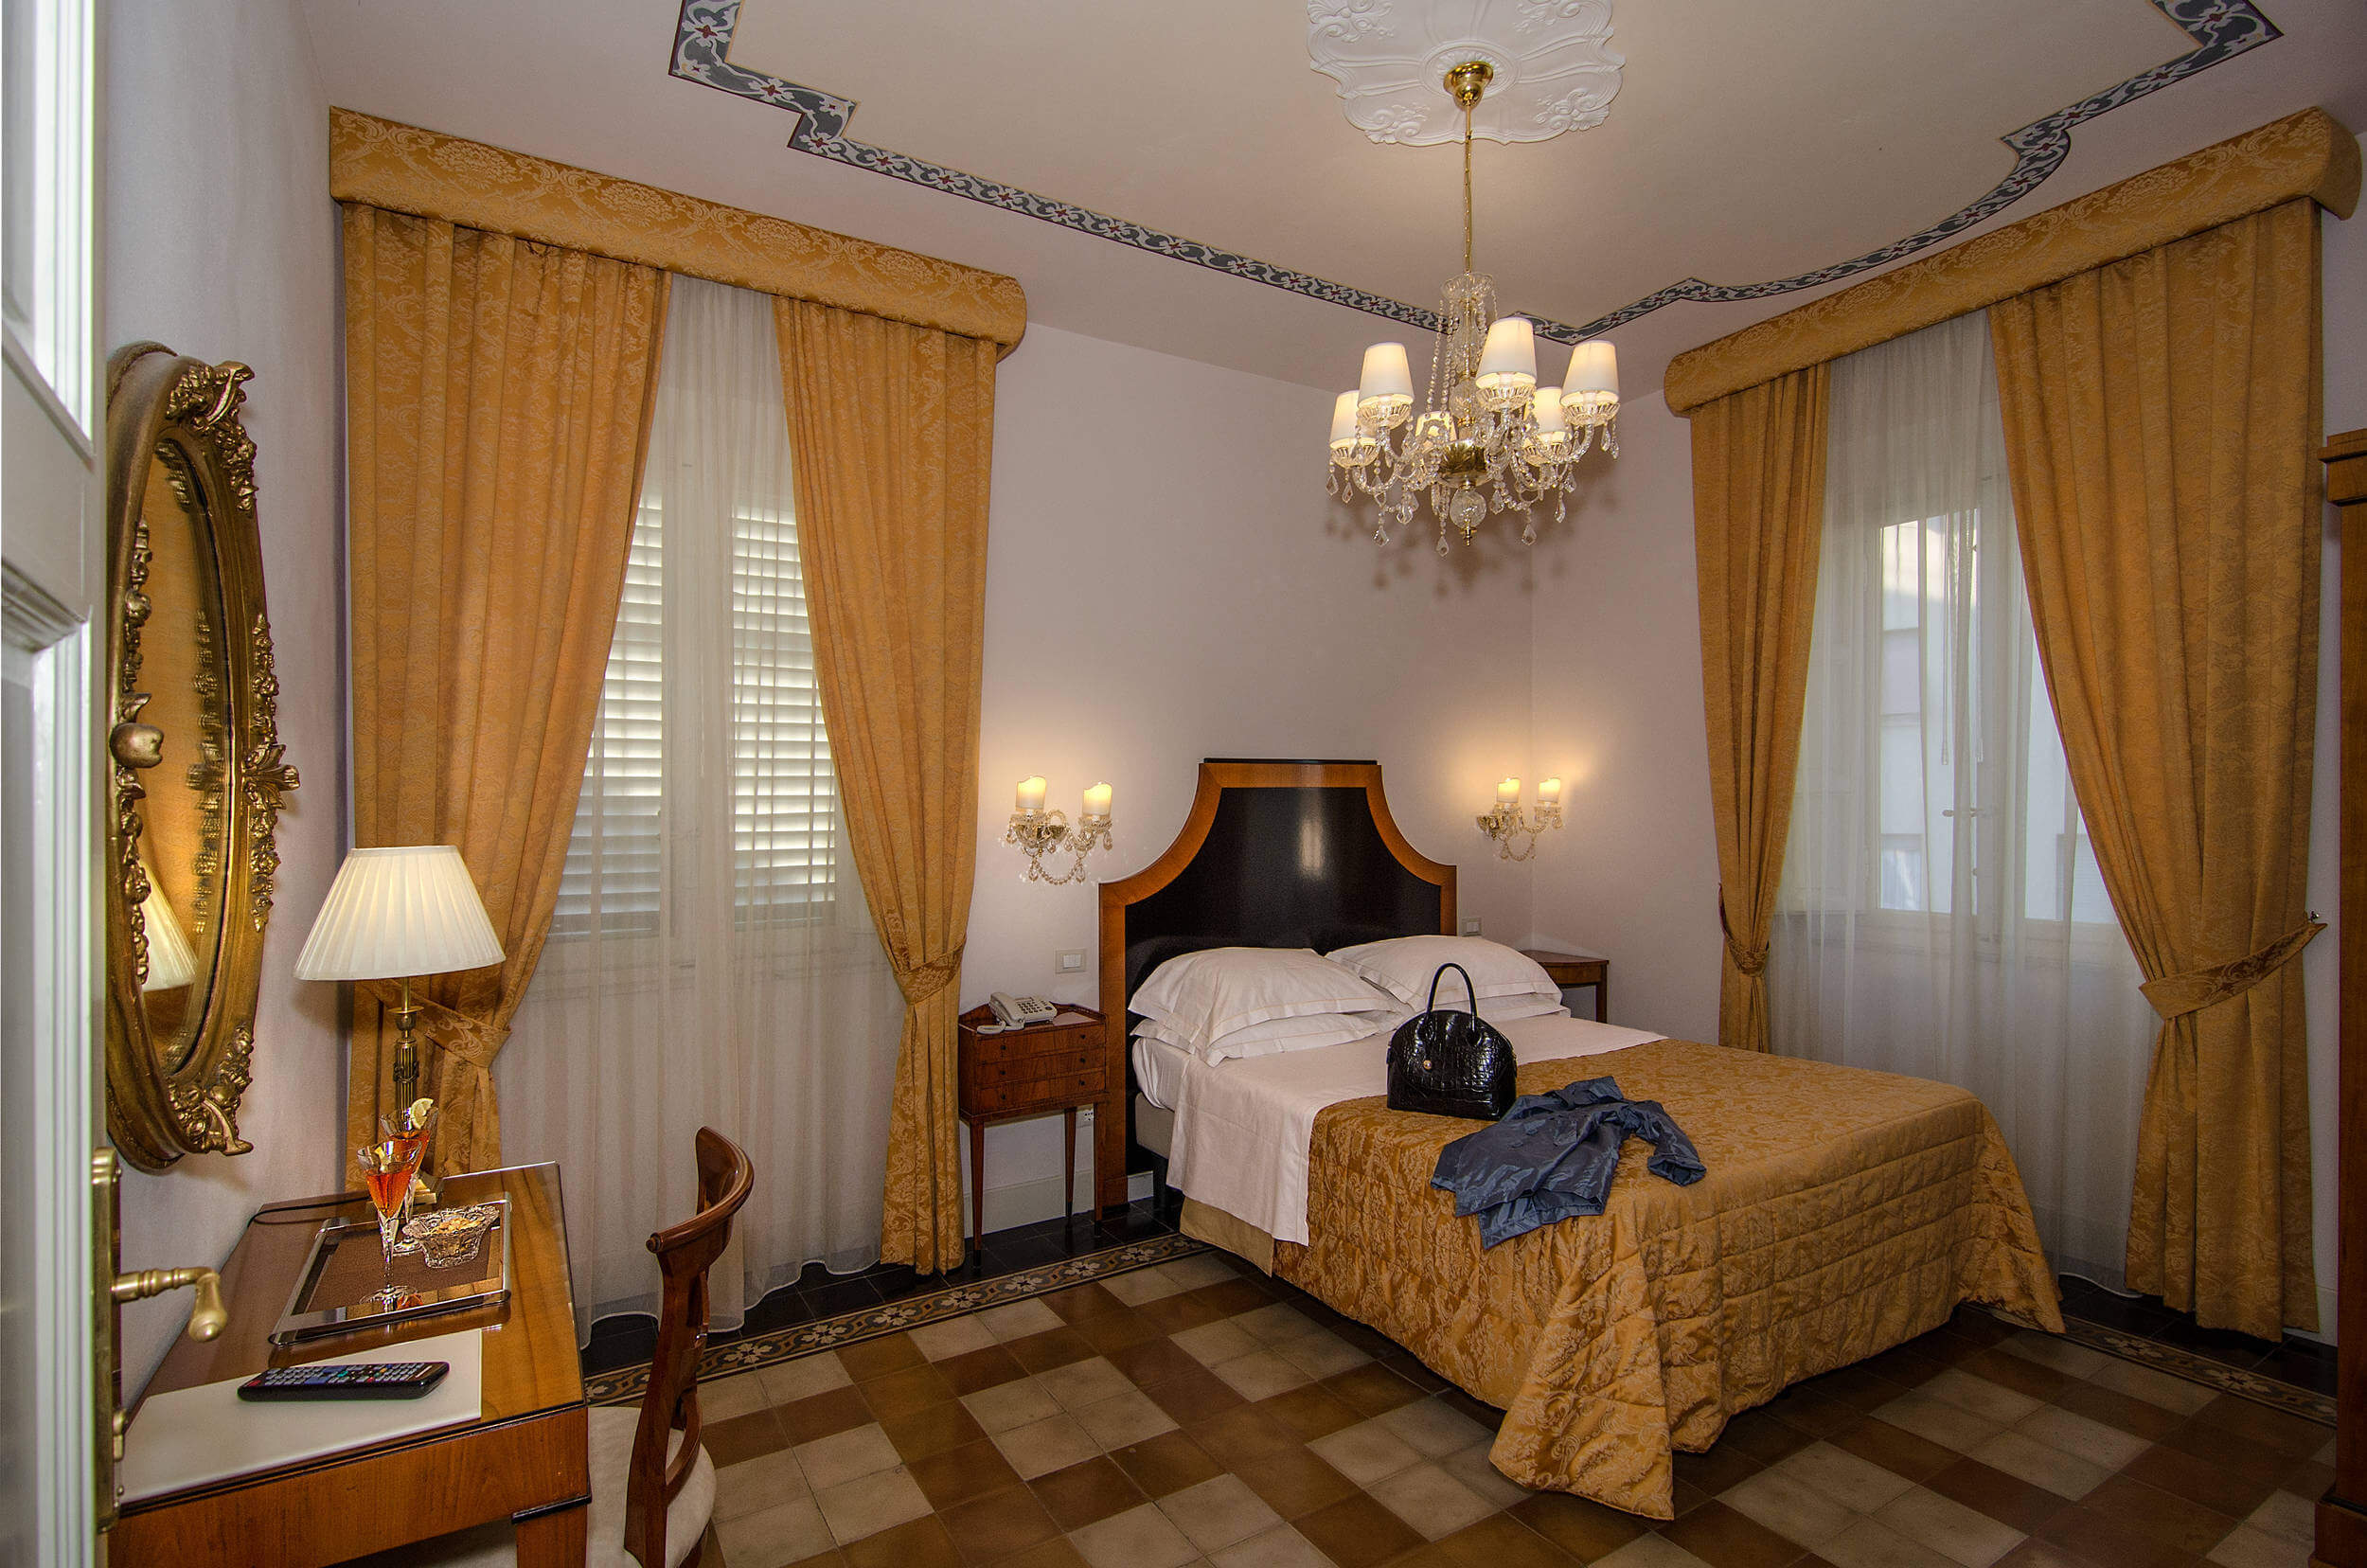 B&B Lucca rooms reservation Lucca Comics offers Tuscany